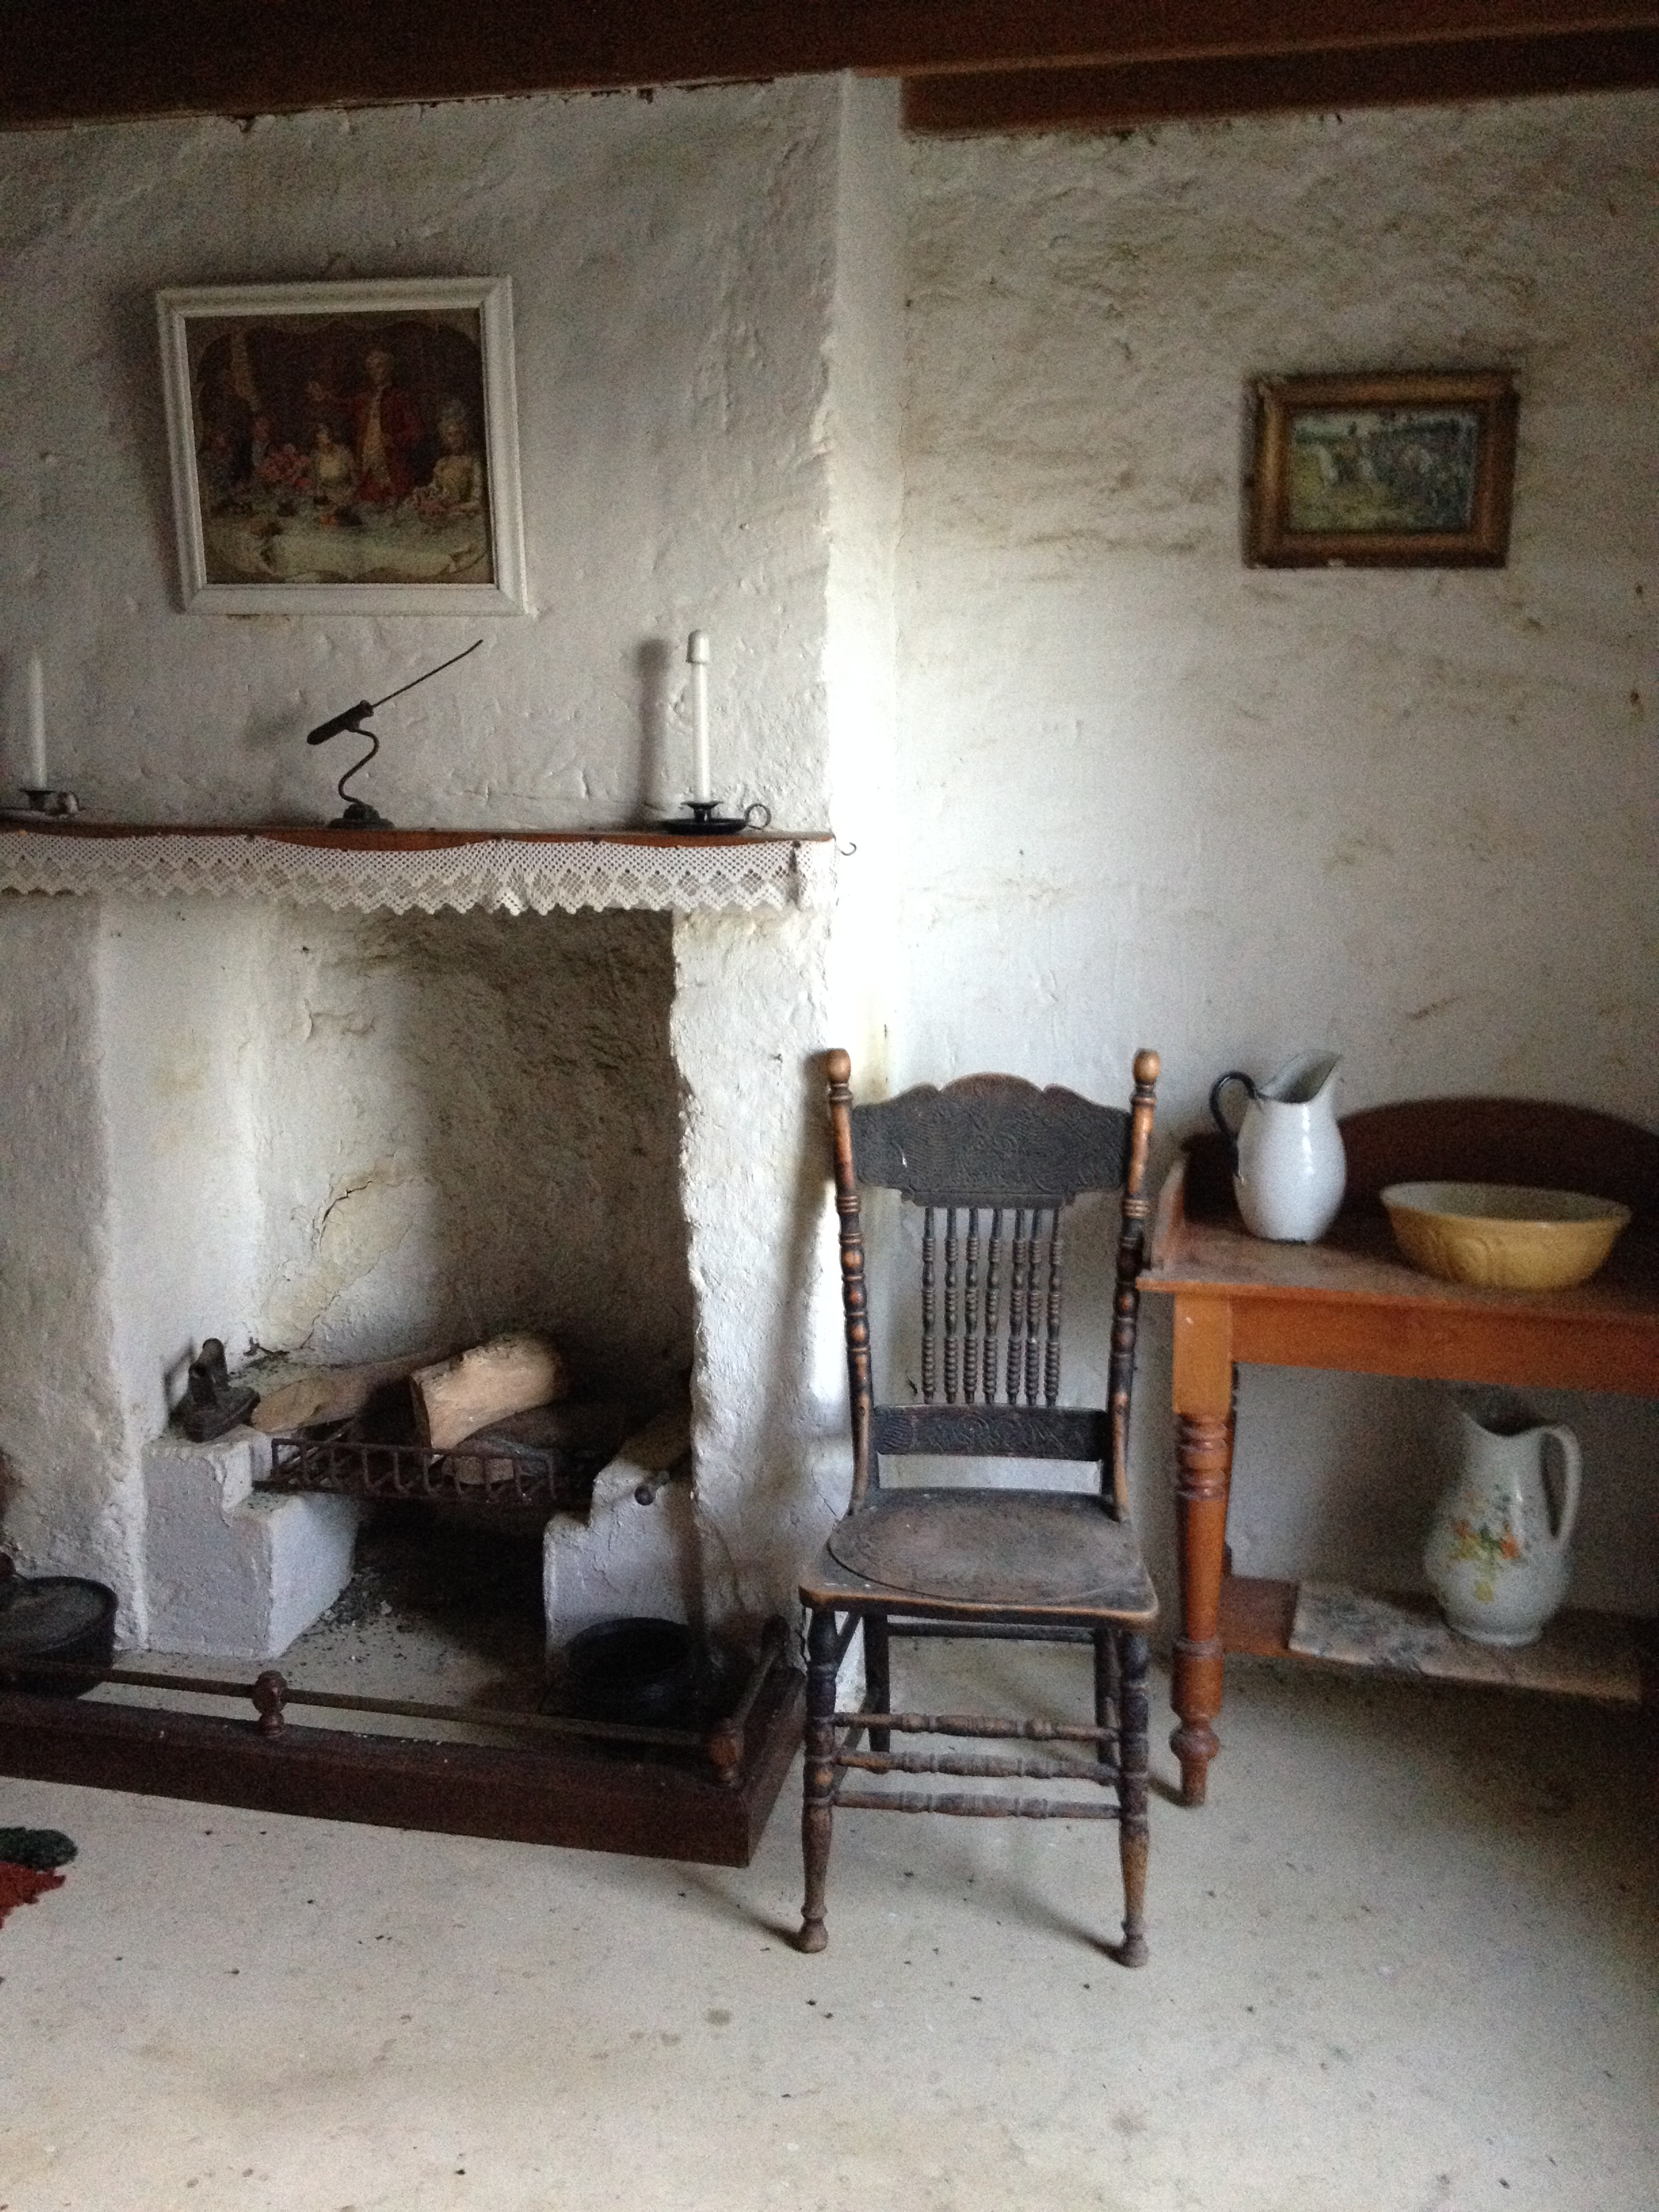 sod cottage interior.JPG